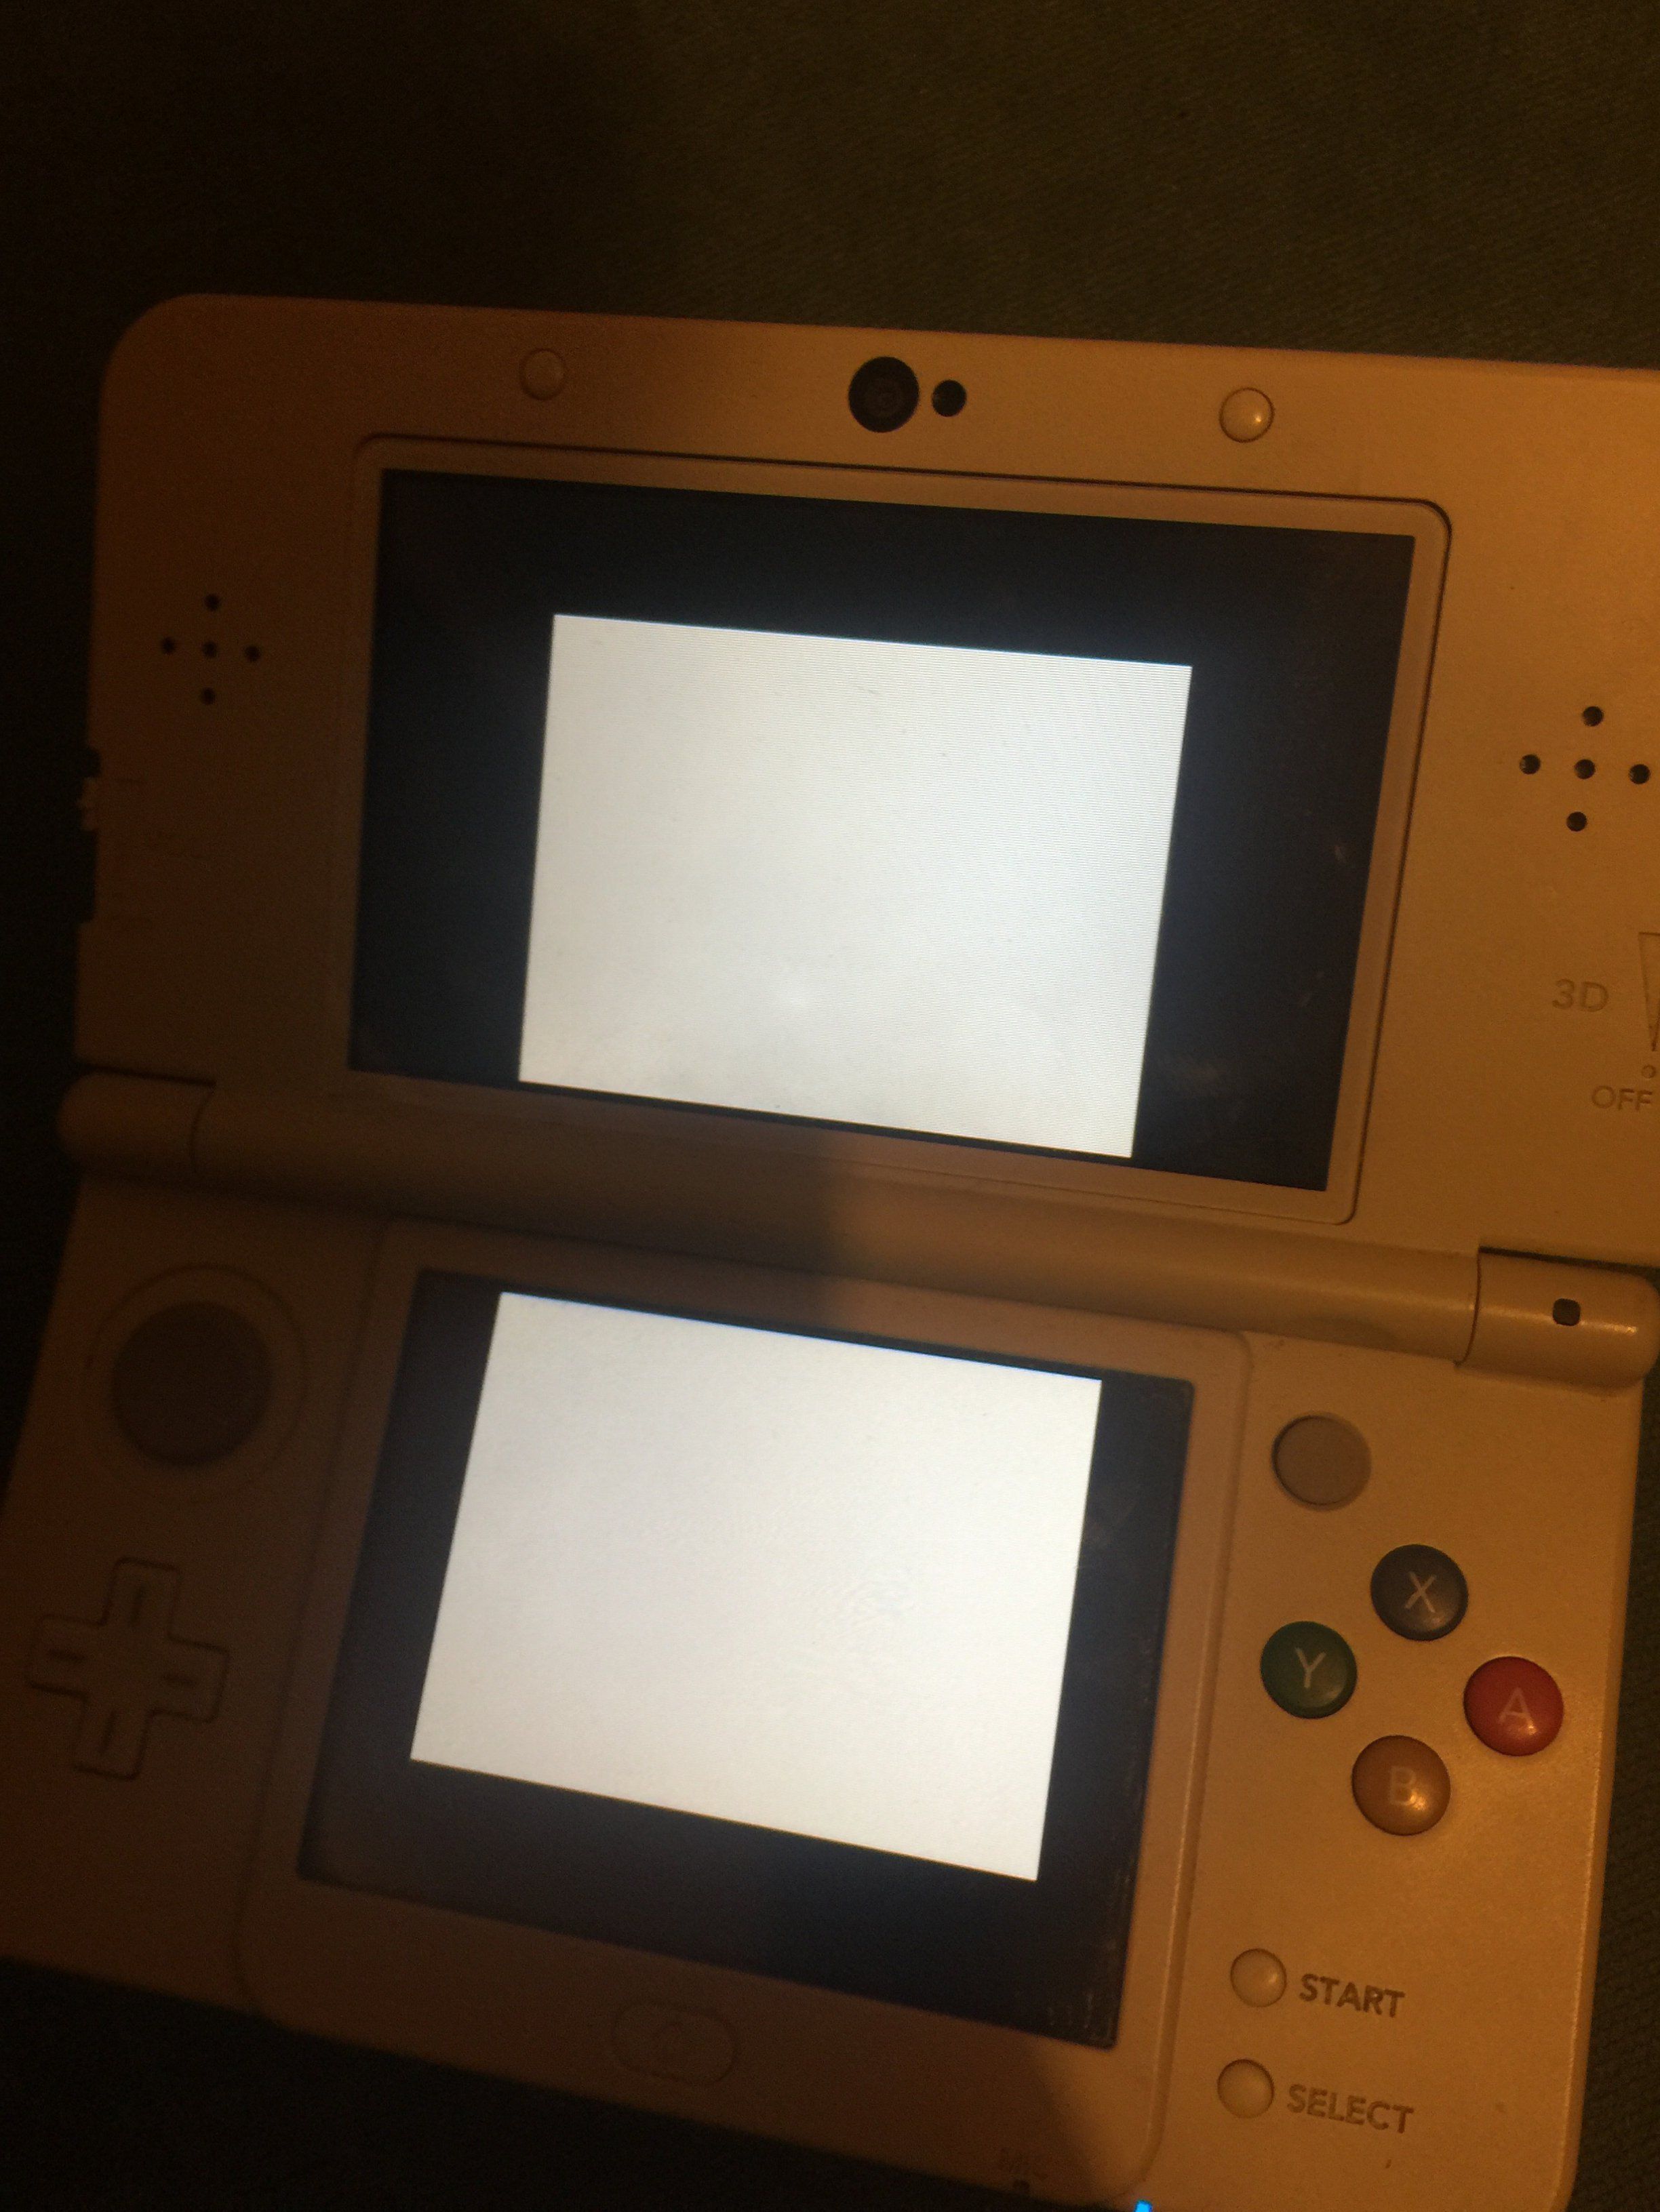 Wip 3desmume Ds Emulator For 3ds Page 105 Gbatemp Net The